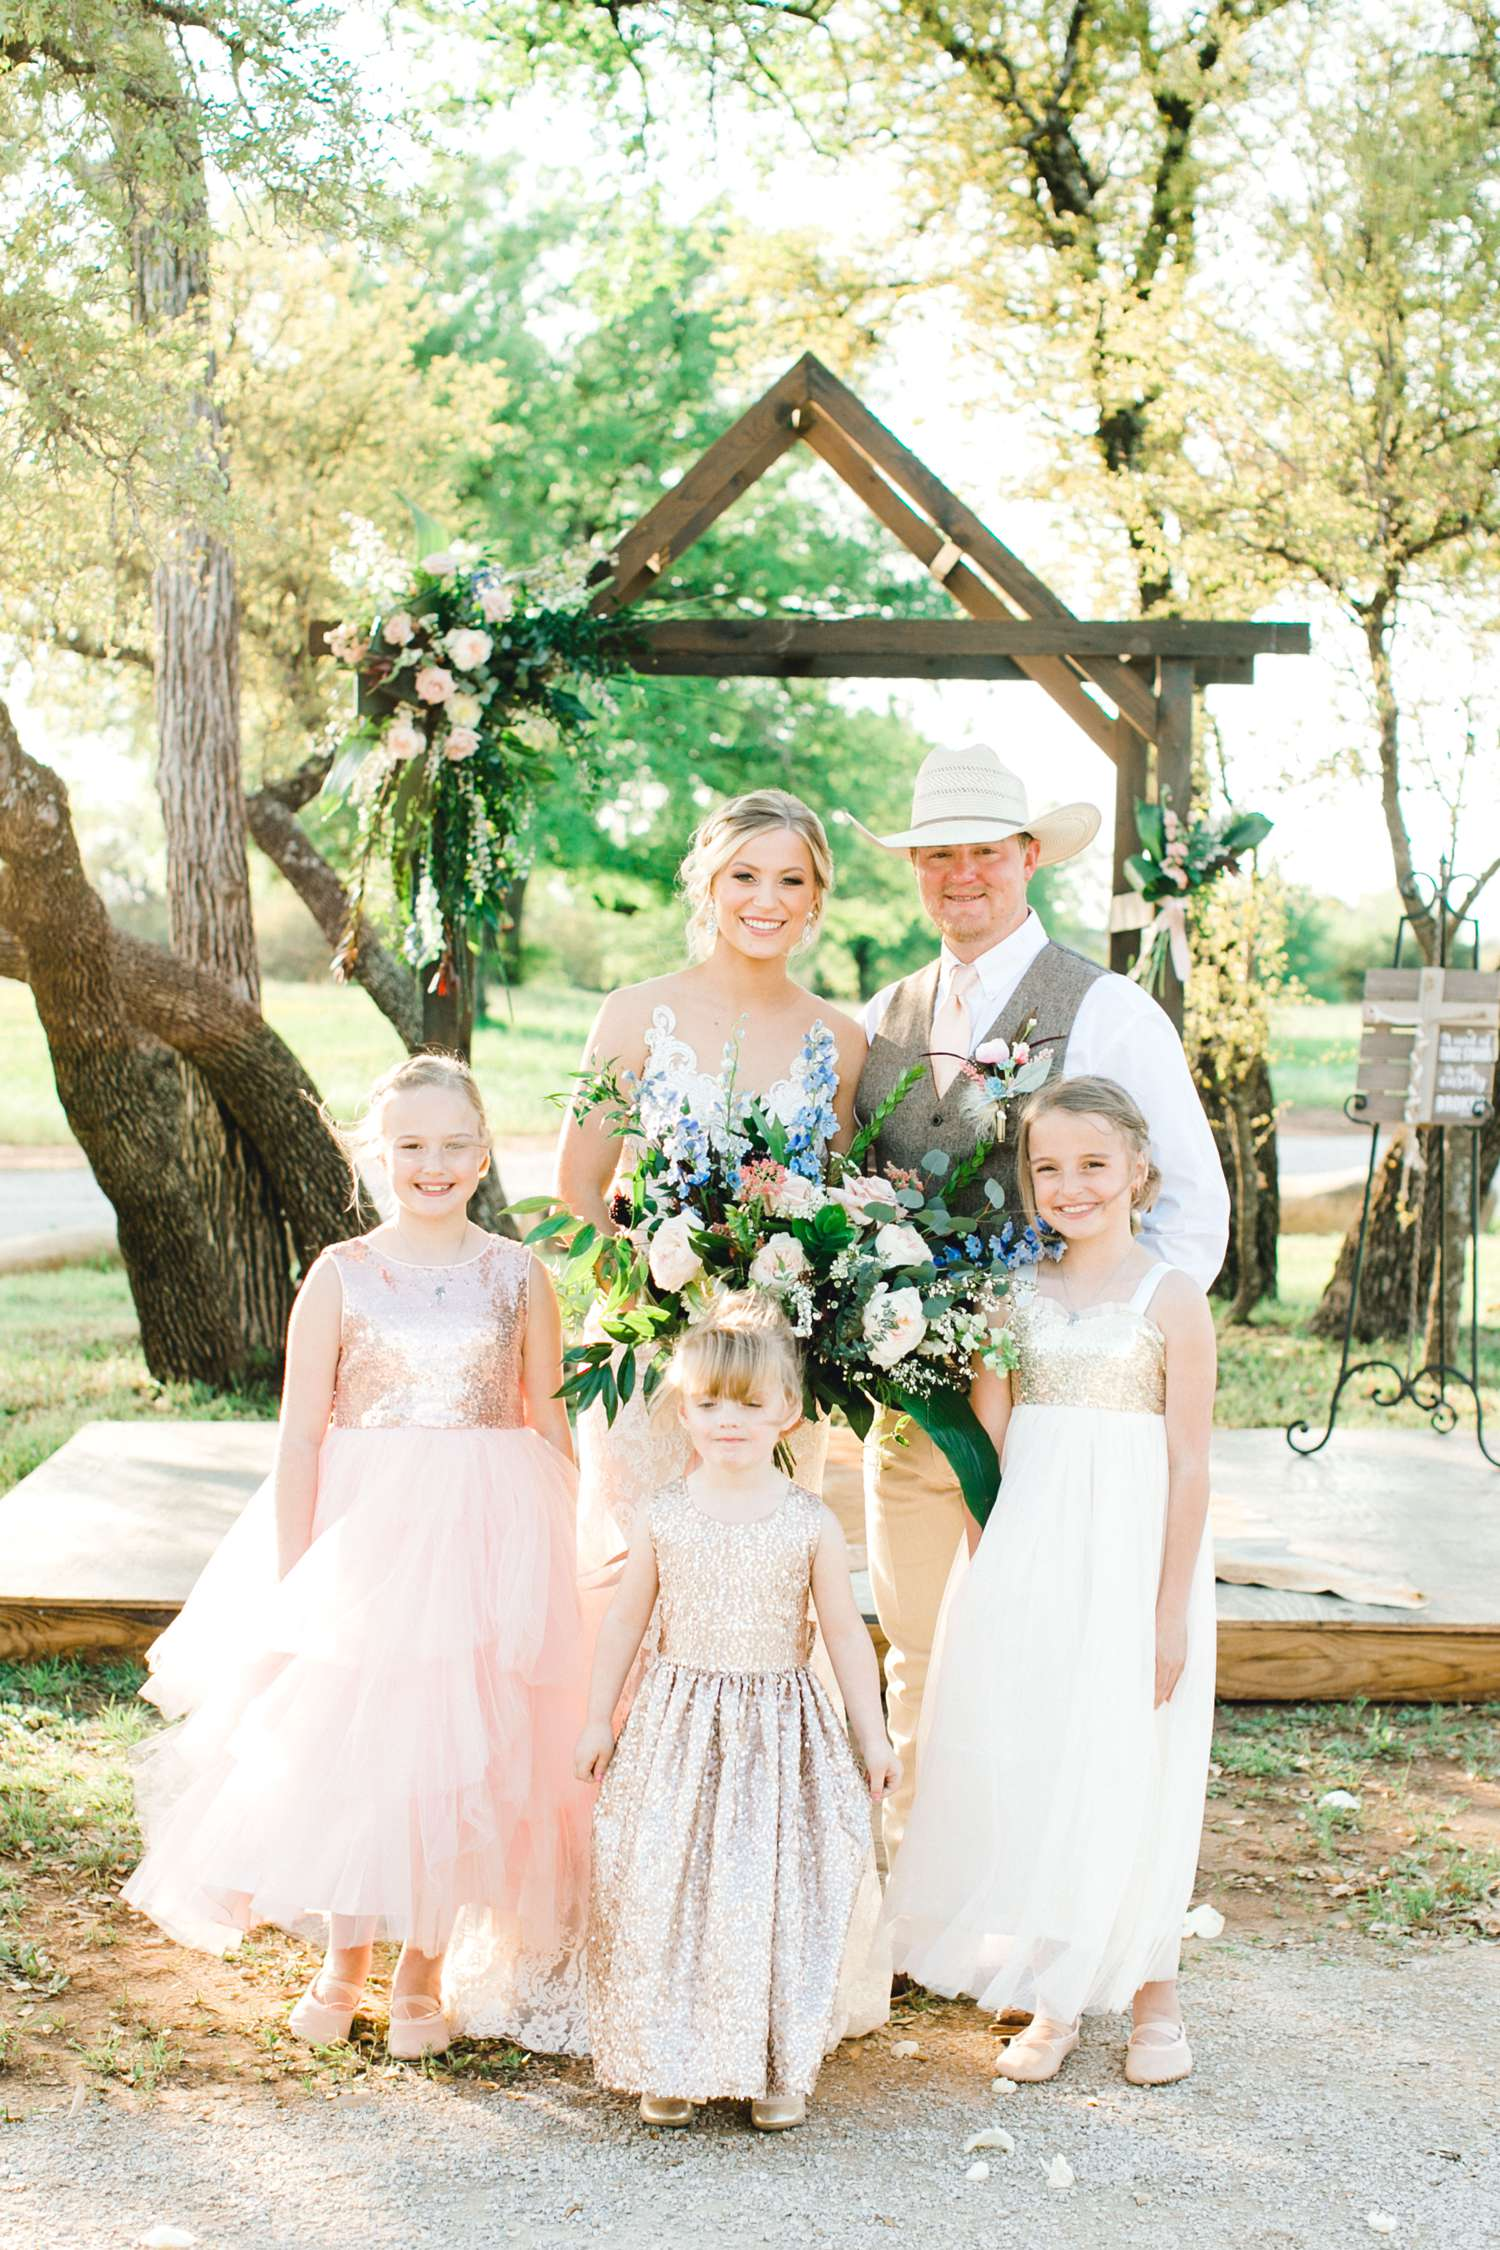 SARAH+TREVOR+BADGETT+SPARROW+CREEK+GRAHAM+TEXAS+ALLEEJ+WEDDINGS_0085.jpg